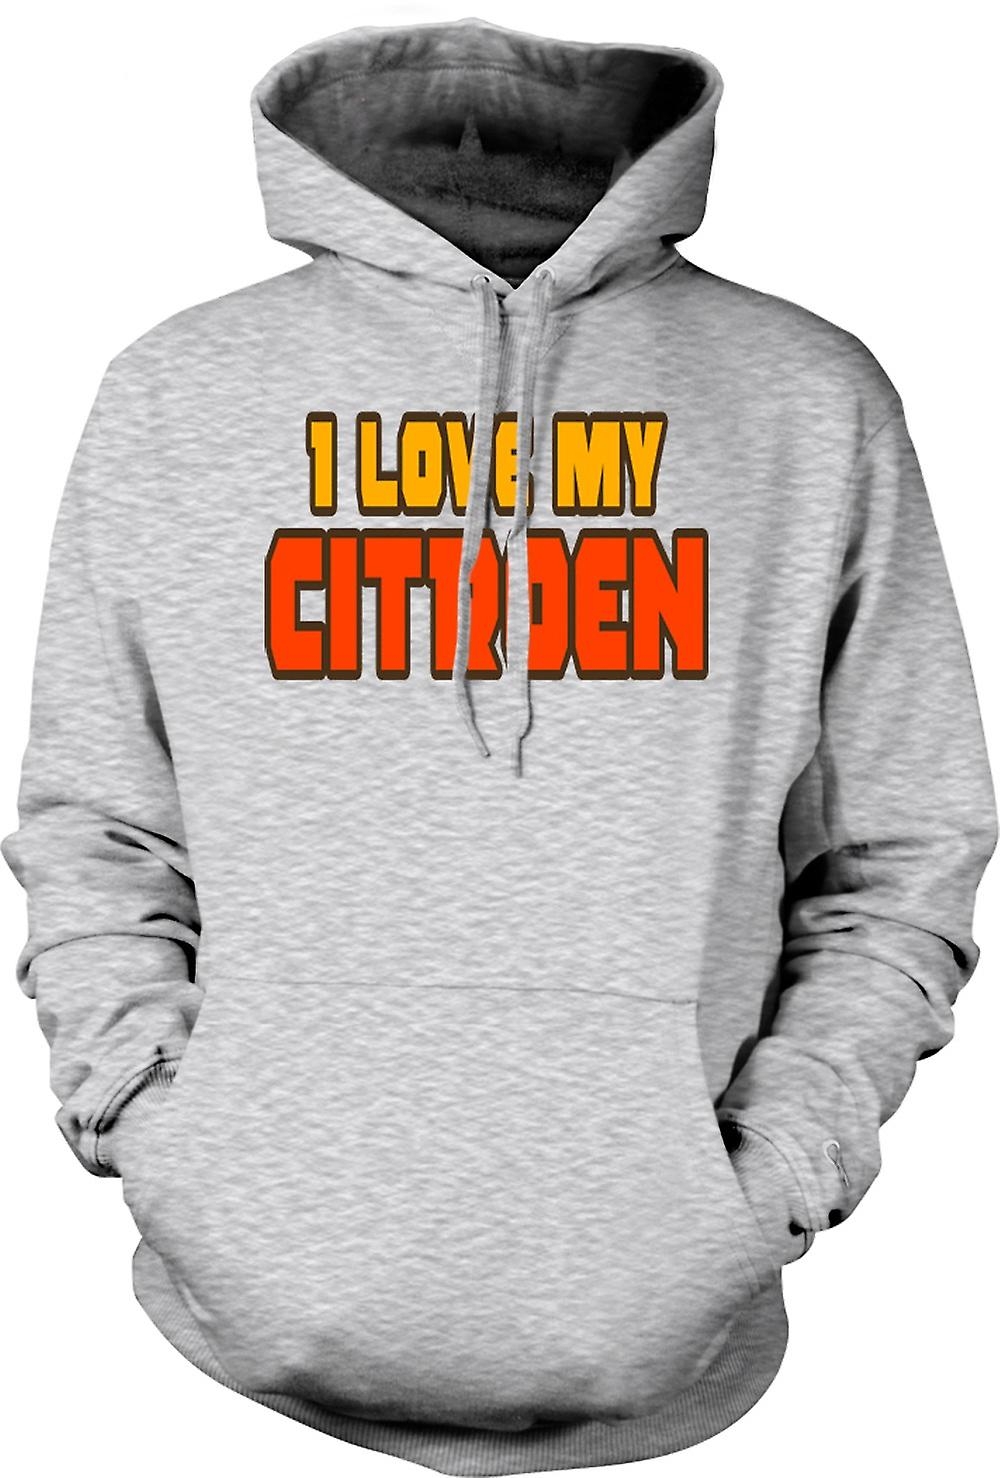 Mens Hoodie - I love my Citroen - Car Enthusiast